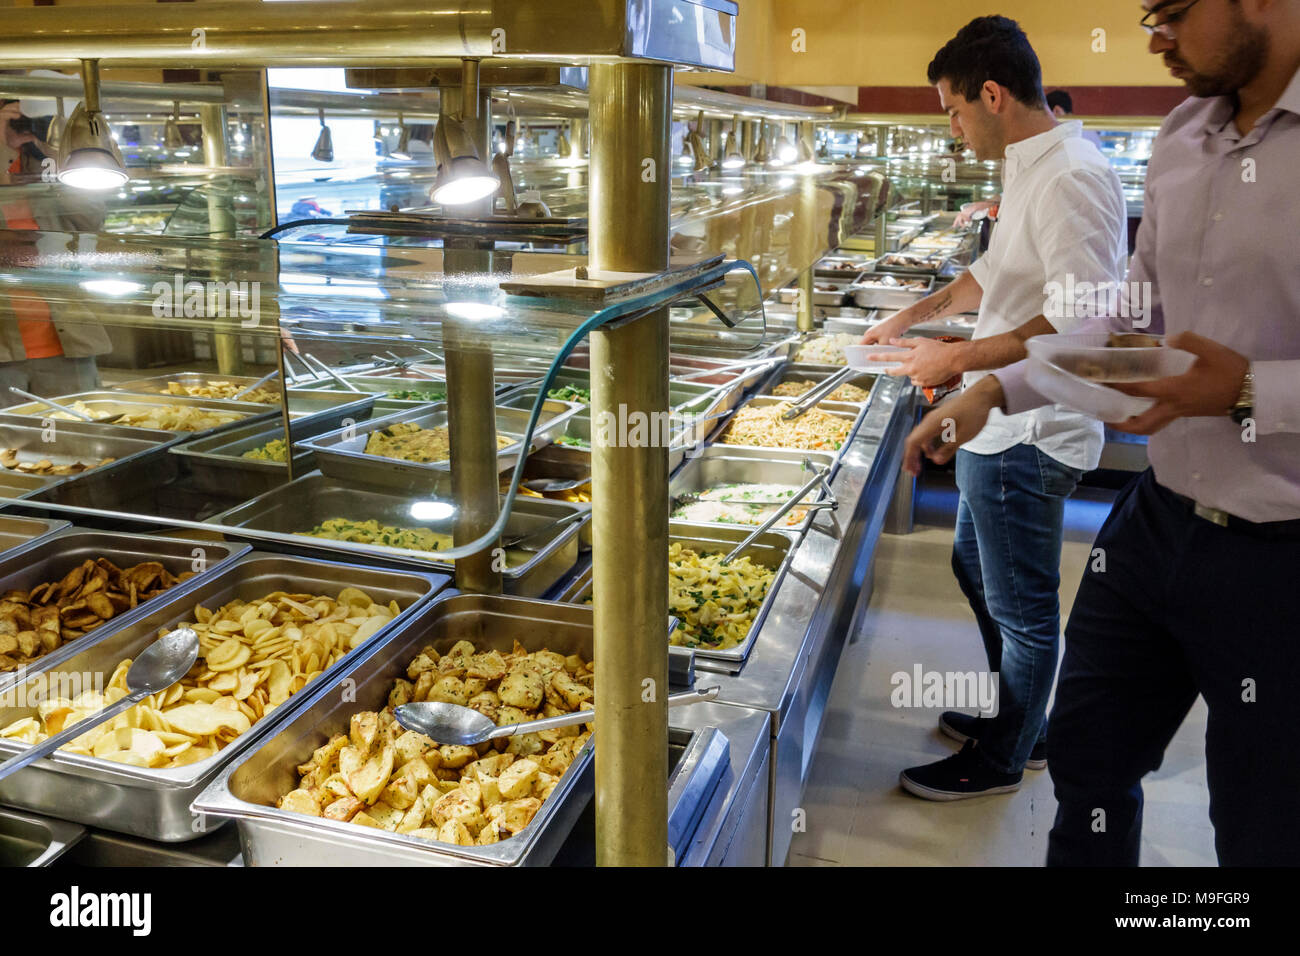 Buenos Aires Argentina Microcentro Restaurant Pekin Comida de China restaurant interior Asian food buffet self-serve chafing trays sneeze guard food safety man young adult Hispanic Argentinean Argentinian Argentine South America American Stock Photo